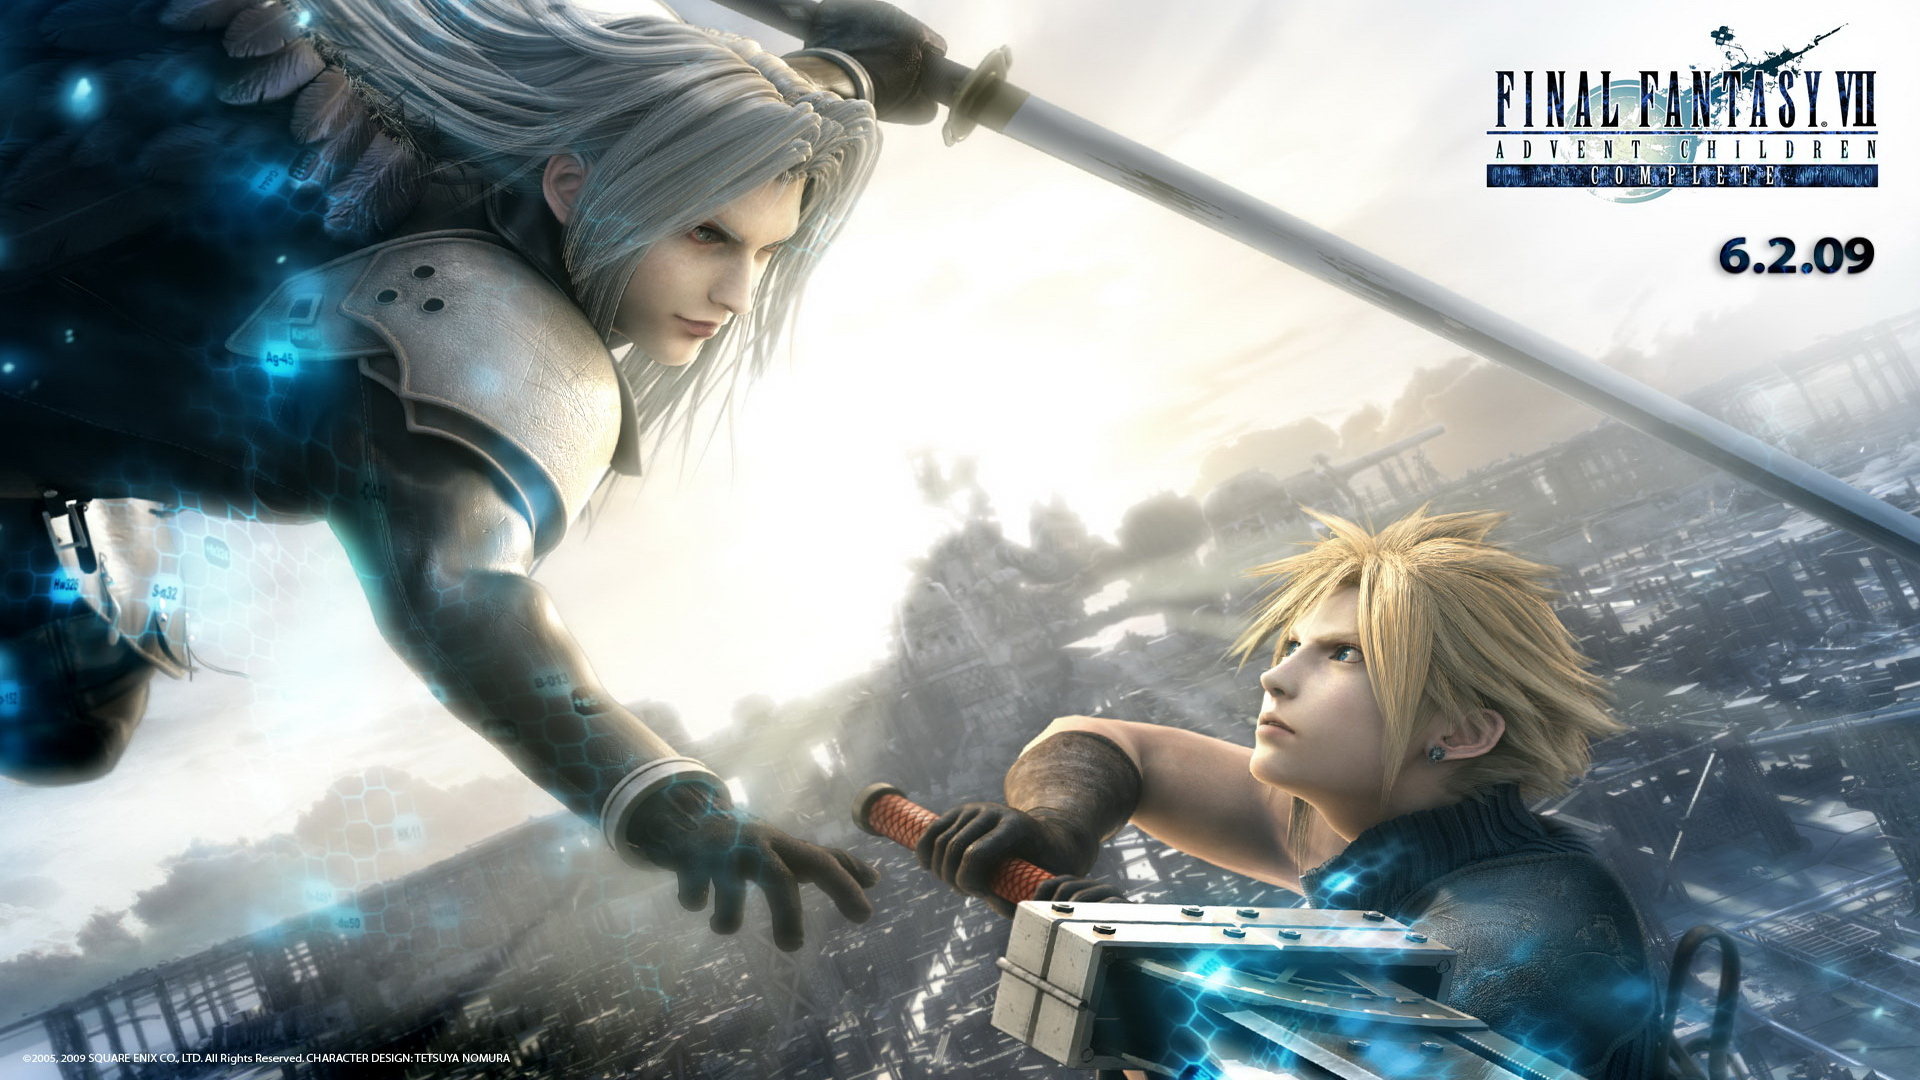 Final Fantasy VII Advent Children Wallpapers Full HD 1080p HD 1920x1080